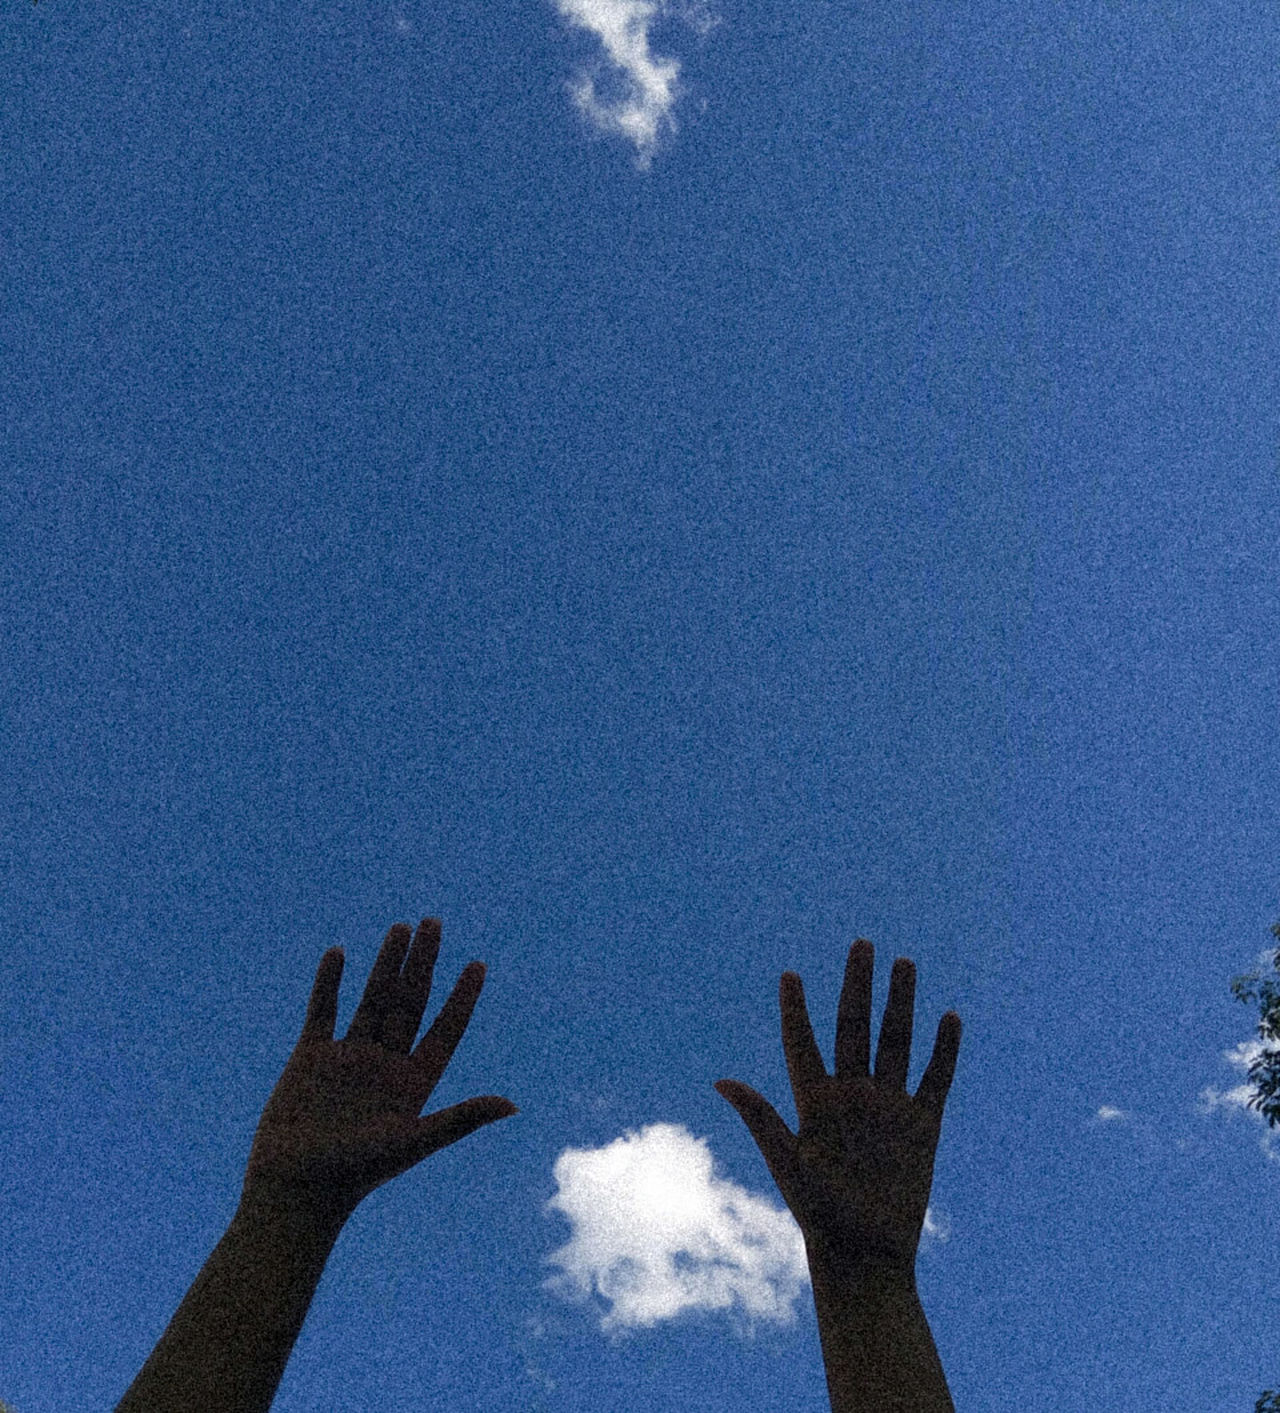 Freedoom  Blue Sky Blue Day Sky Lifestyles Free Free Spirit Real People Beautiful Day Low Section Close-up One Person PeopleHuman Body Part Human Hand Hands Hands Up Close-up People